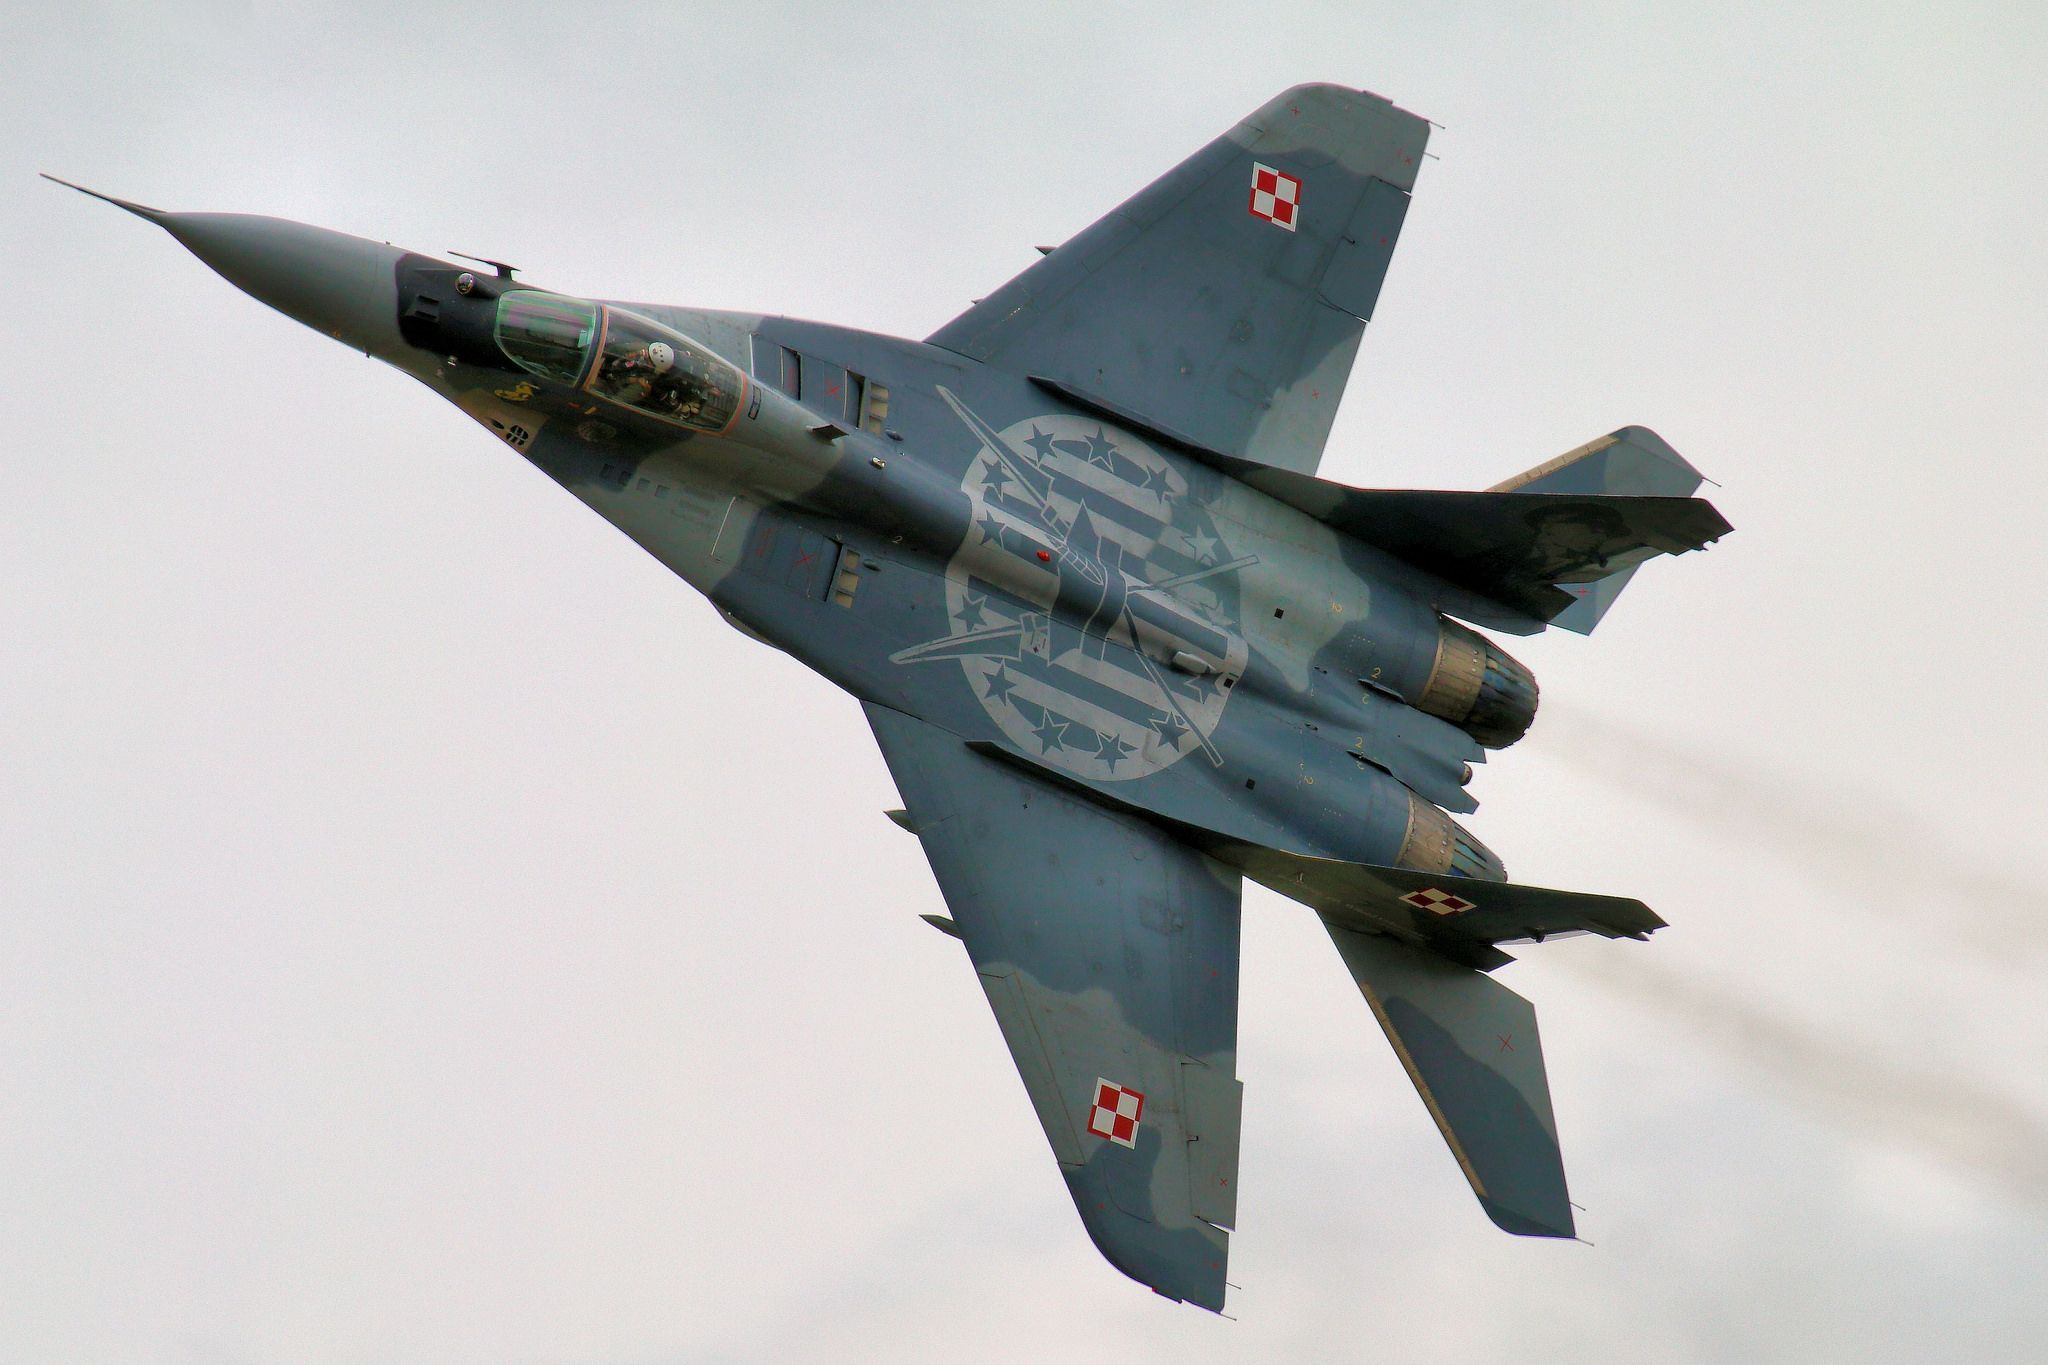 All sizes Mig 29 Flickr Photo Sharing! Fighter